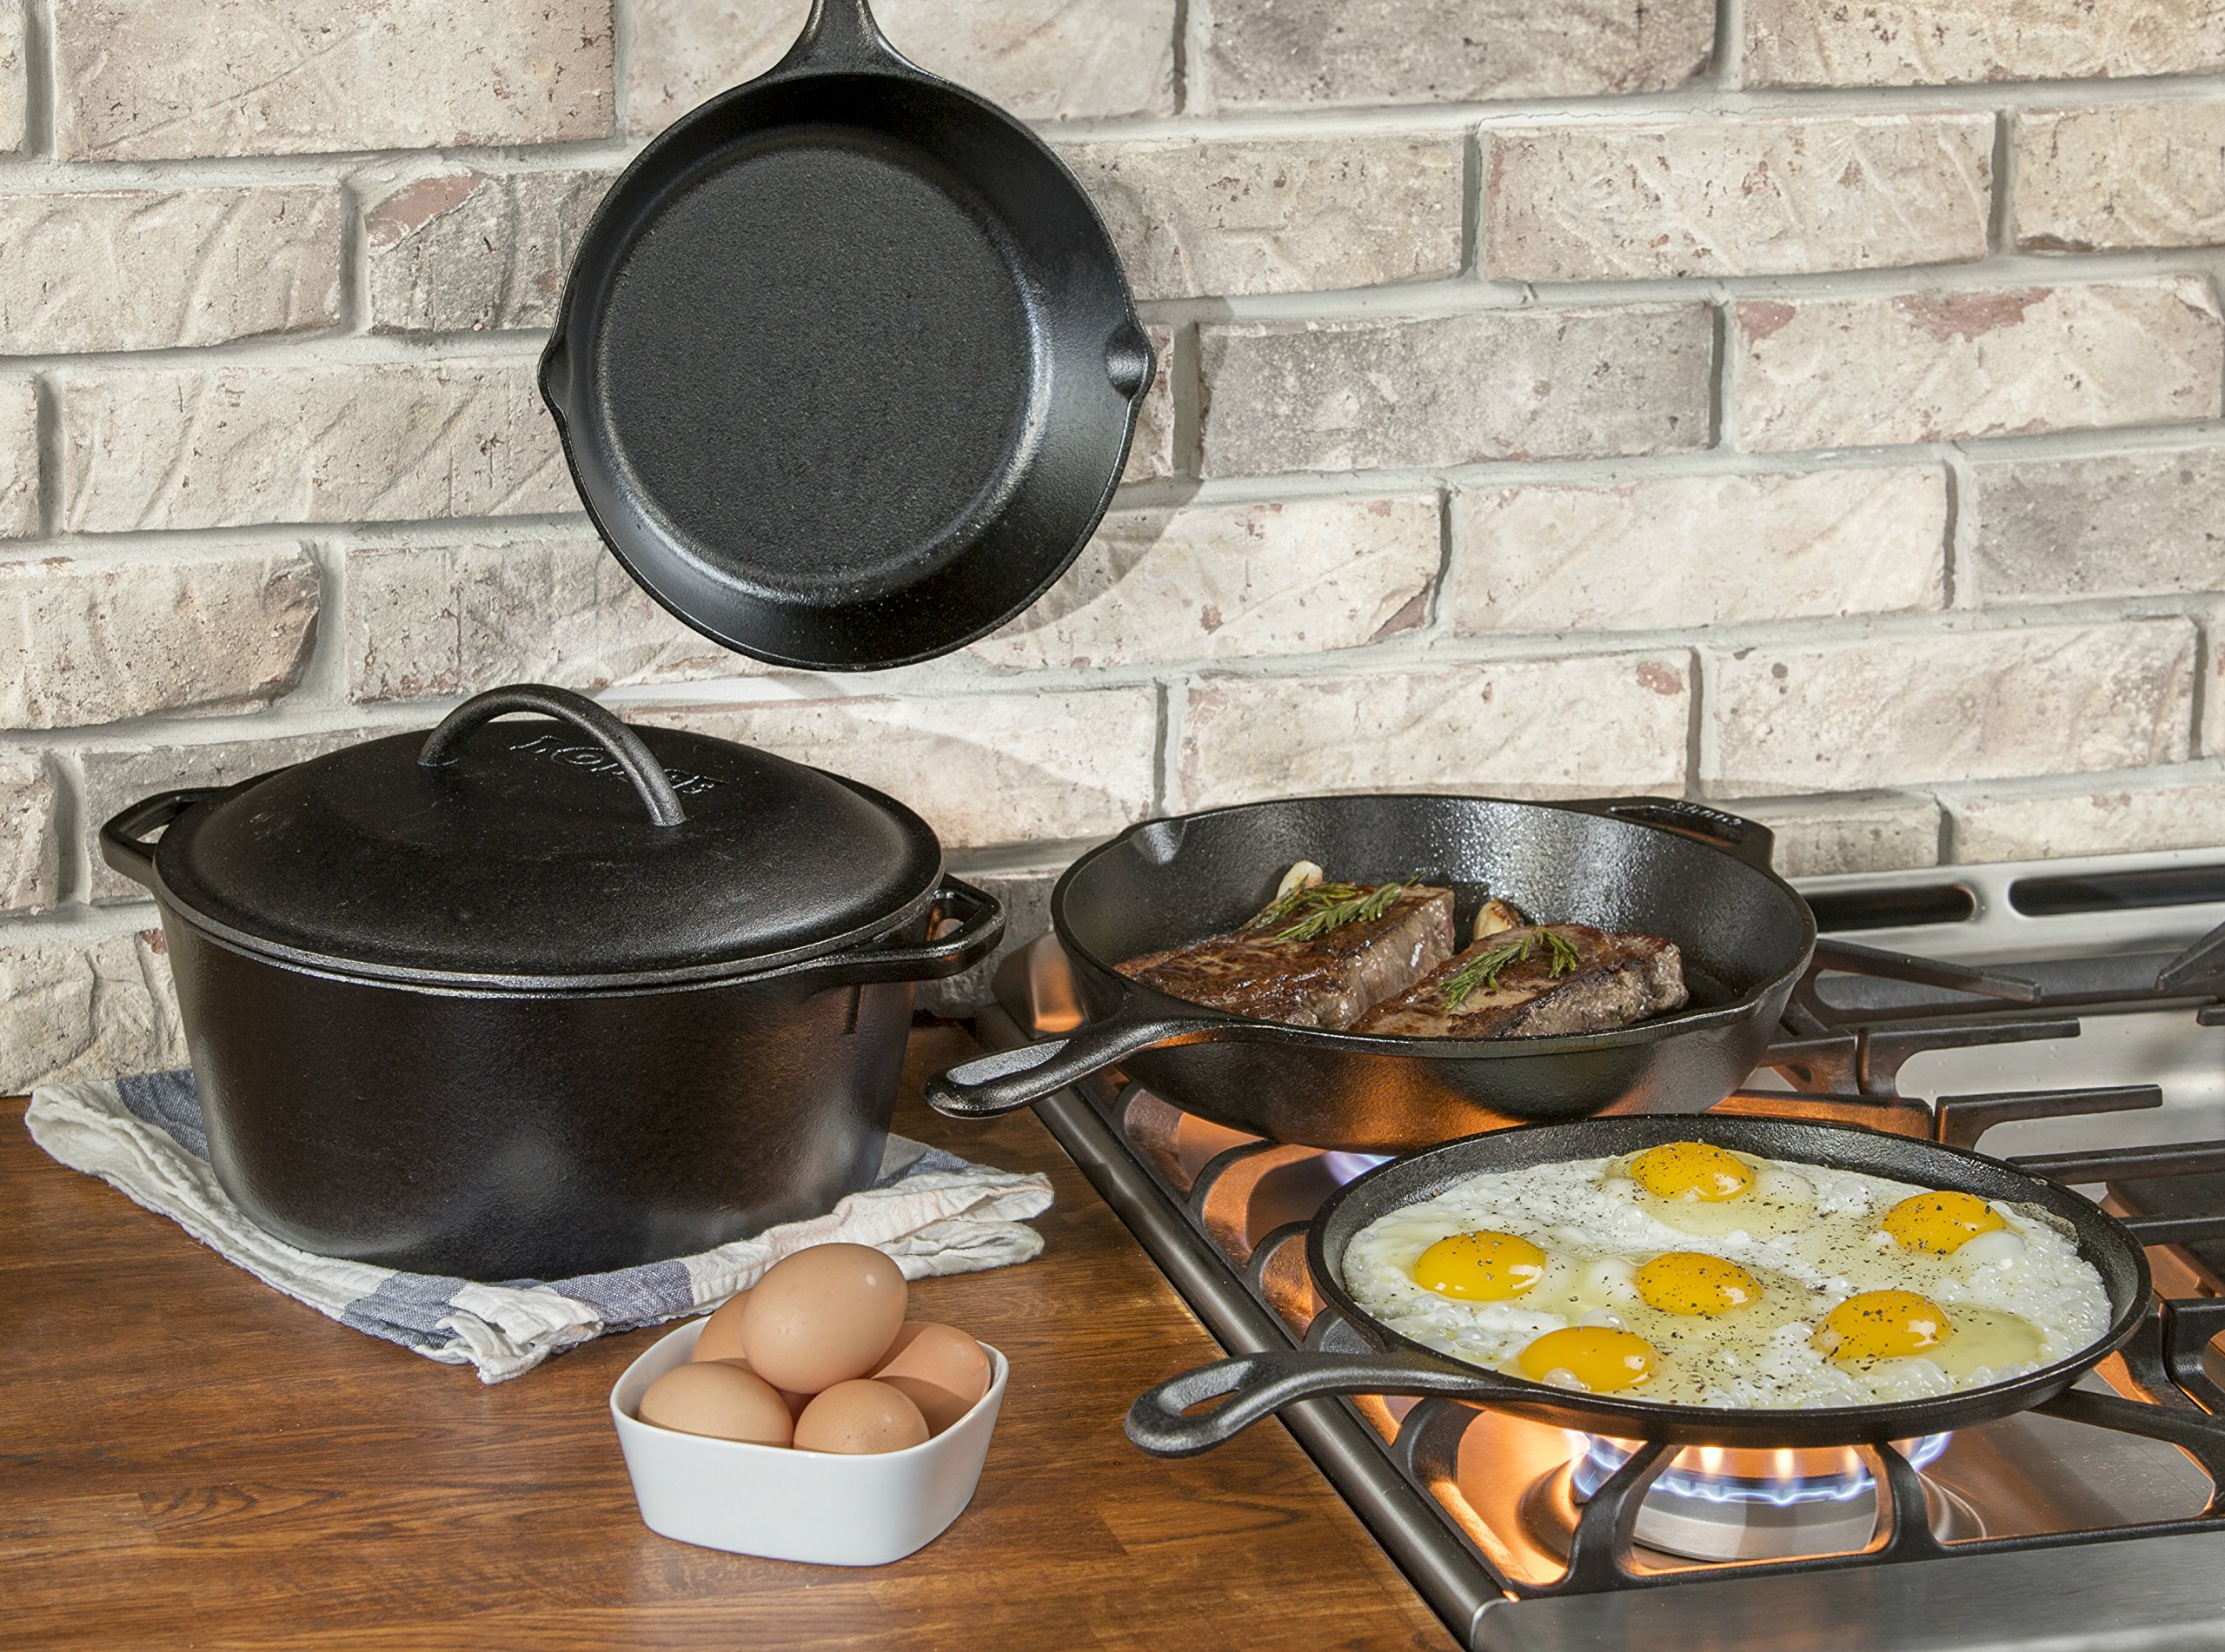 "Lodge Seasoned Cast Iron 5 Piece Bundle. 10.5"" Griddle, 8"" Skillet, 10.25"" Skillet, 10.25"" Dutch Oven, and 10.25"" Lid by Lodge (Image #3)"